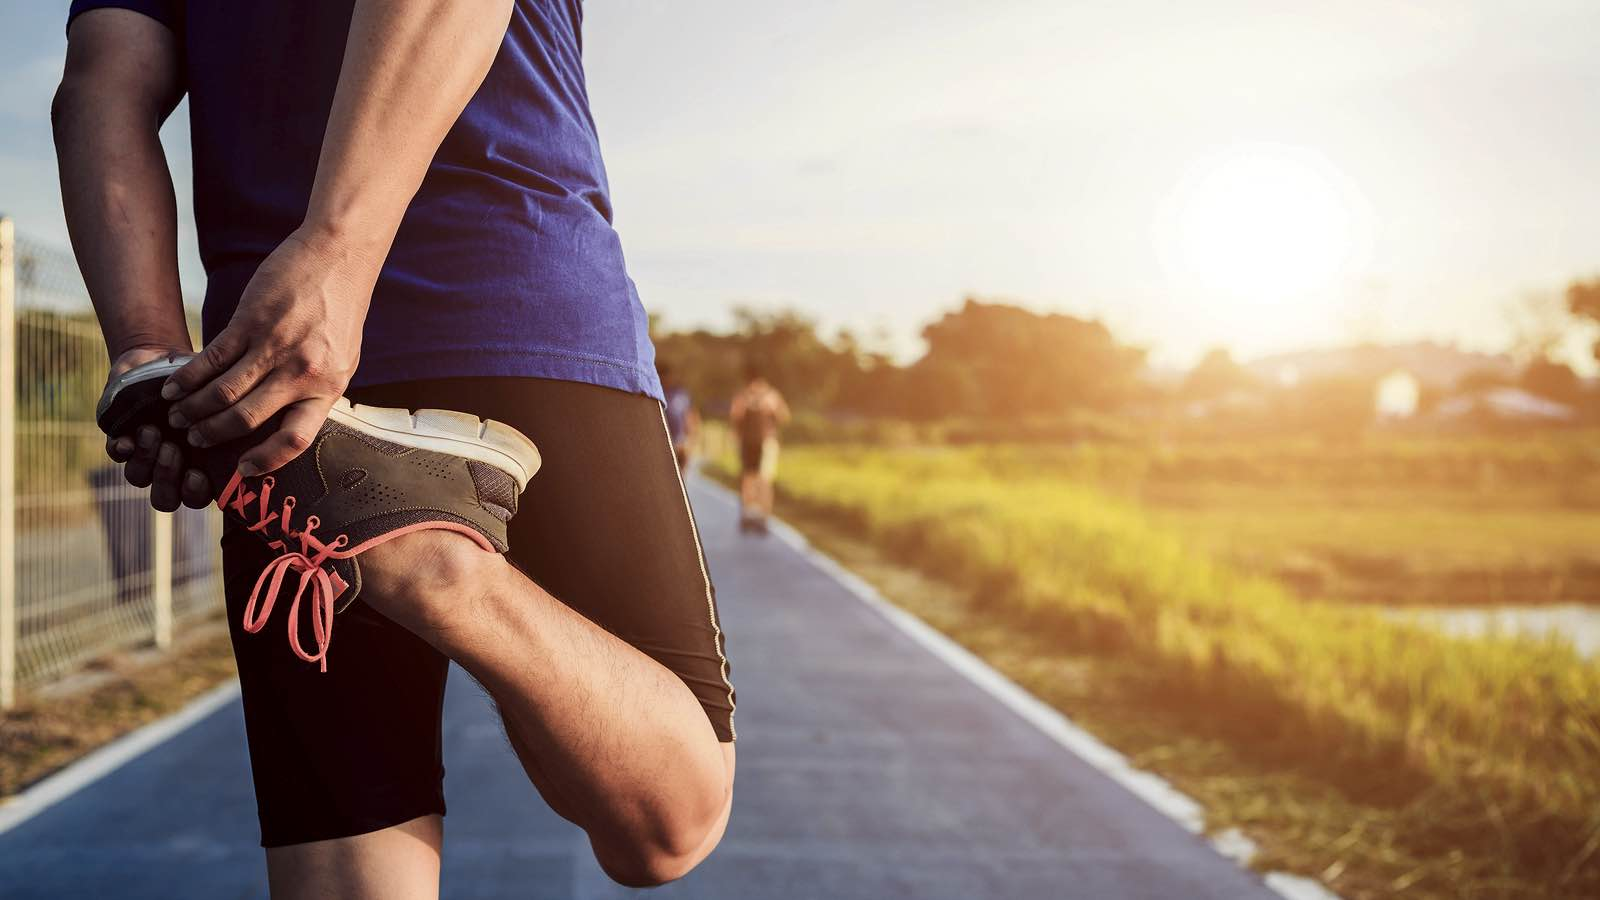 Rehabilitation of Running Biomechanics - Learn how to create a comprehensive plan of care for runners